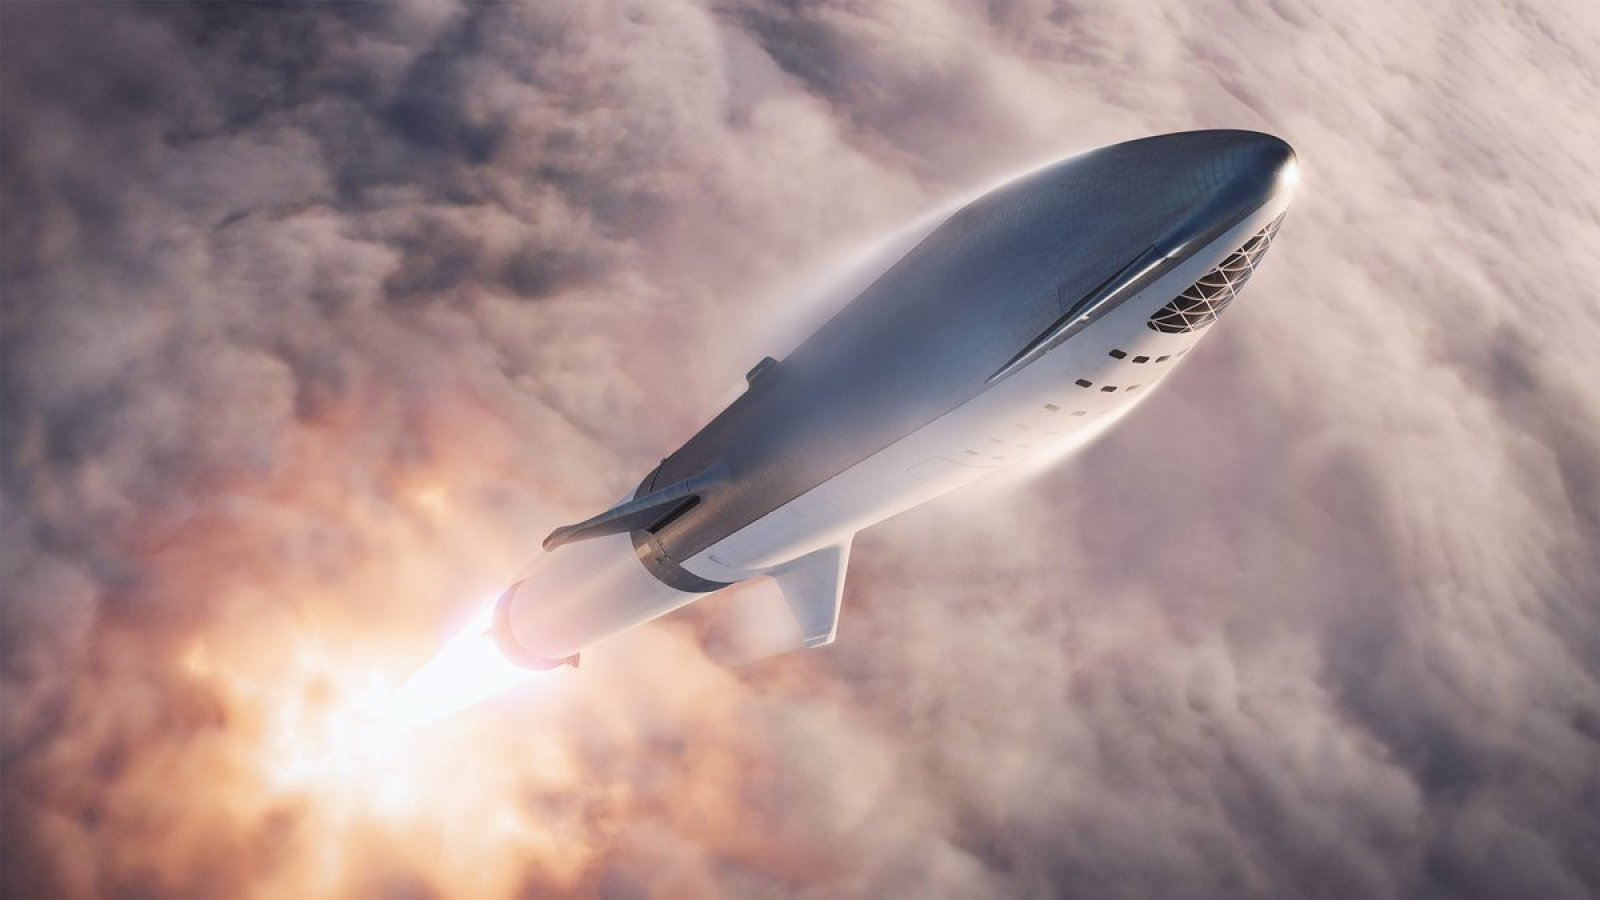 Elon Musk renamed Big Falcon Rocket Starship